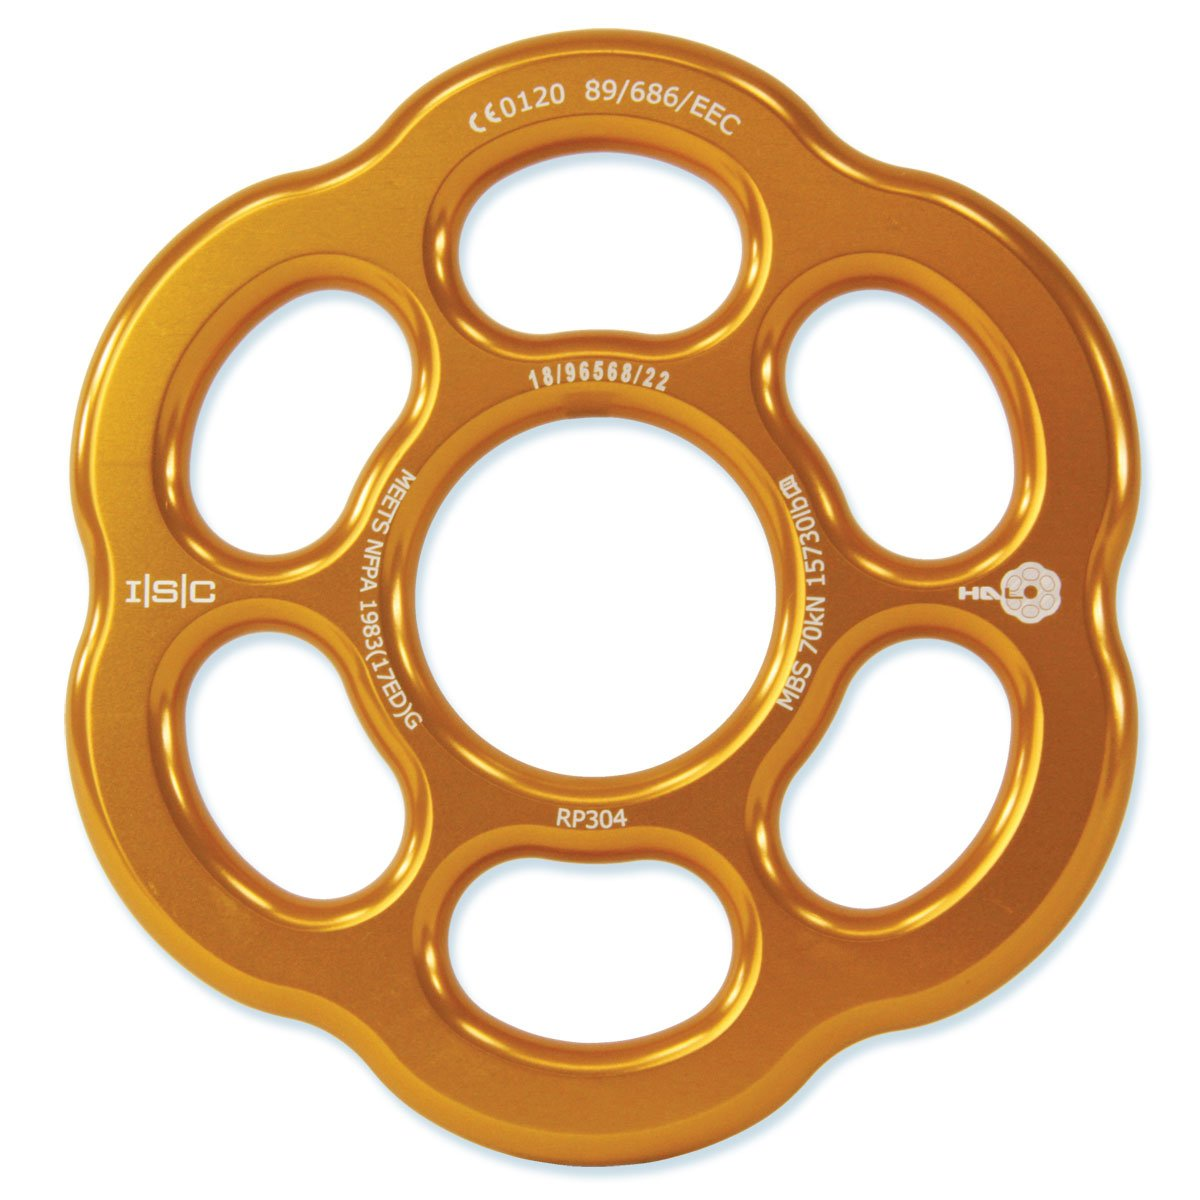 ISC Halo Rigging Plate - Large - 70 kN